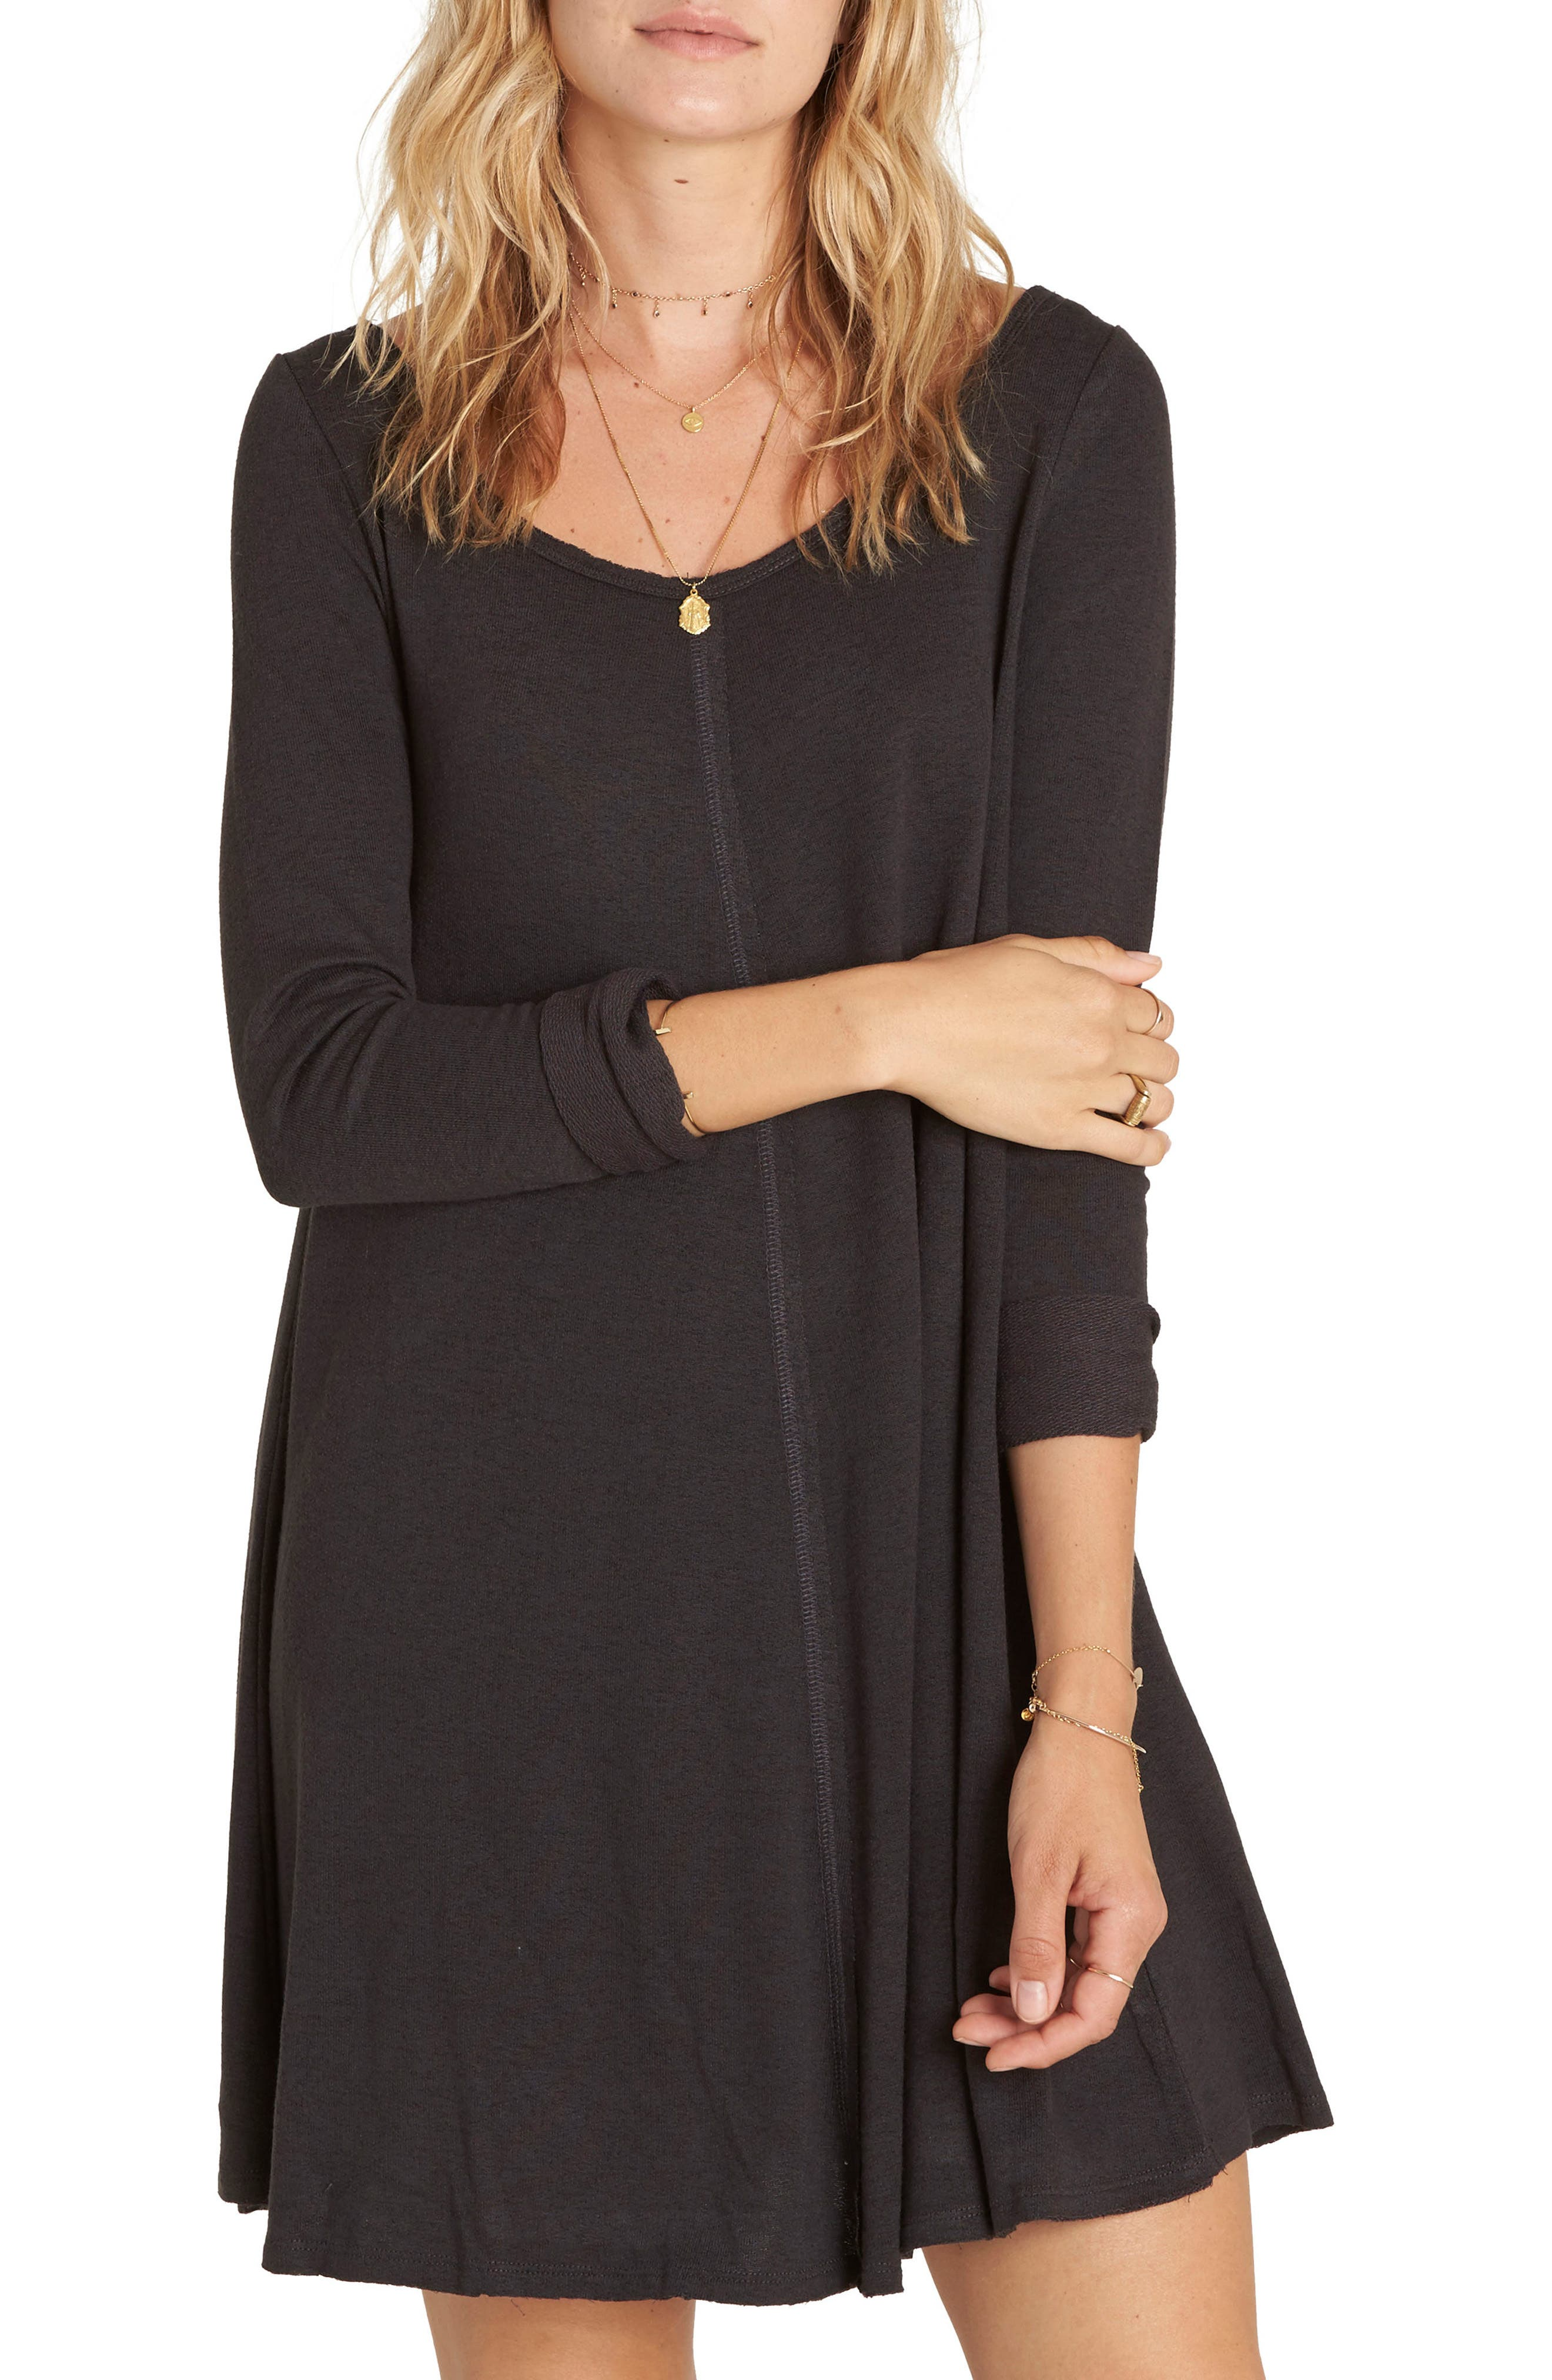 Another Day Swing Dress,                         Main,                         color, Off Black